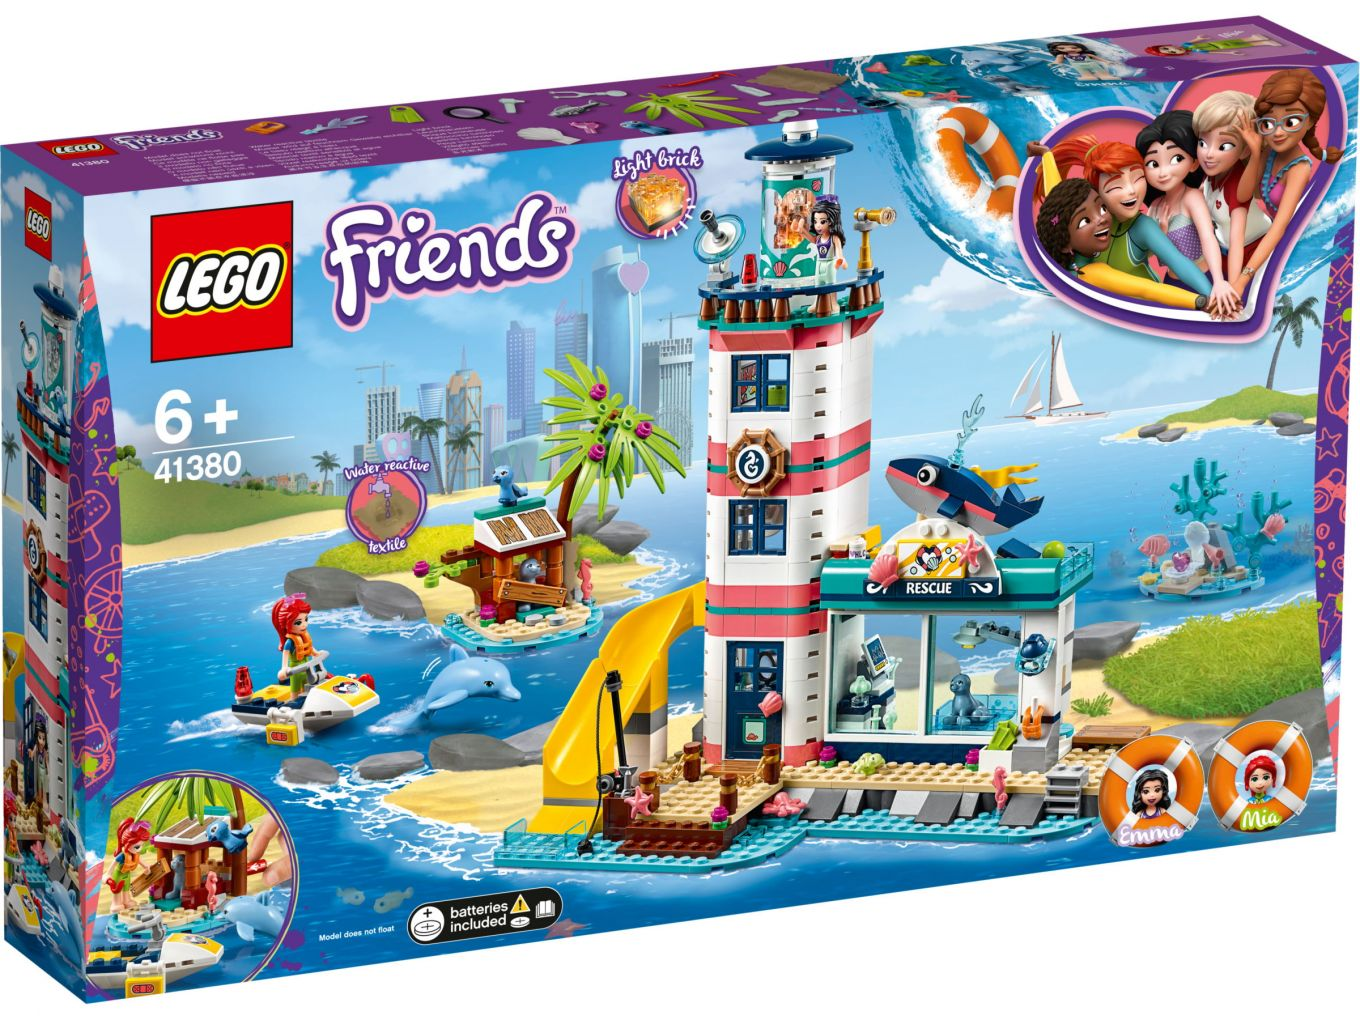 LEGO Friends - 41380 Rescue Lighthouse - Box Front   The ...